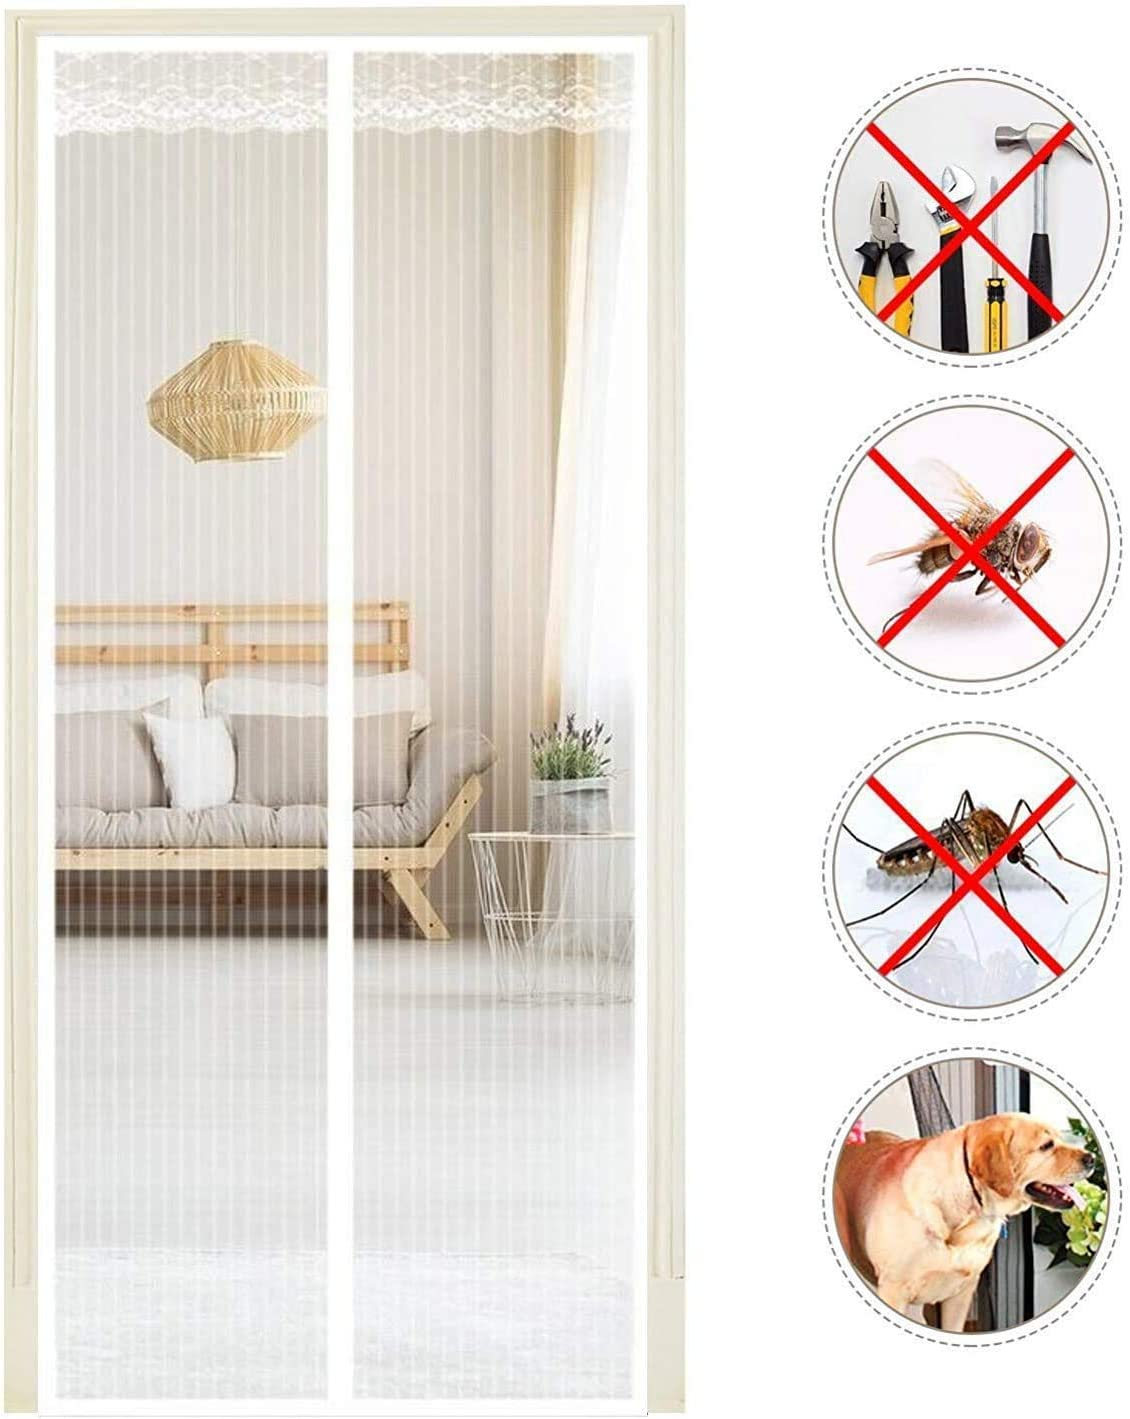 28x78inch Magnetic Curtain Mosquito Door with Heavy Duty Mesh Curtain Let Fresh Air Ente for Back Doors NQ032-White-70x190cm Front Doors Patio Doors